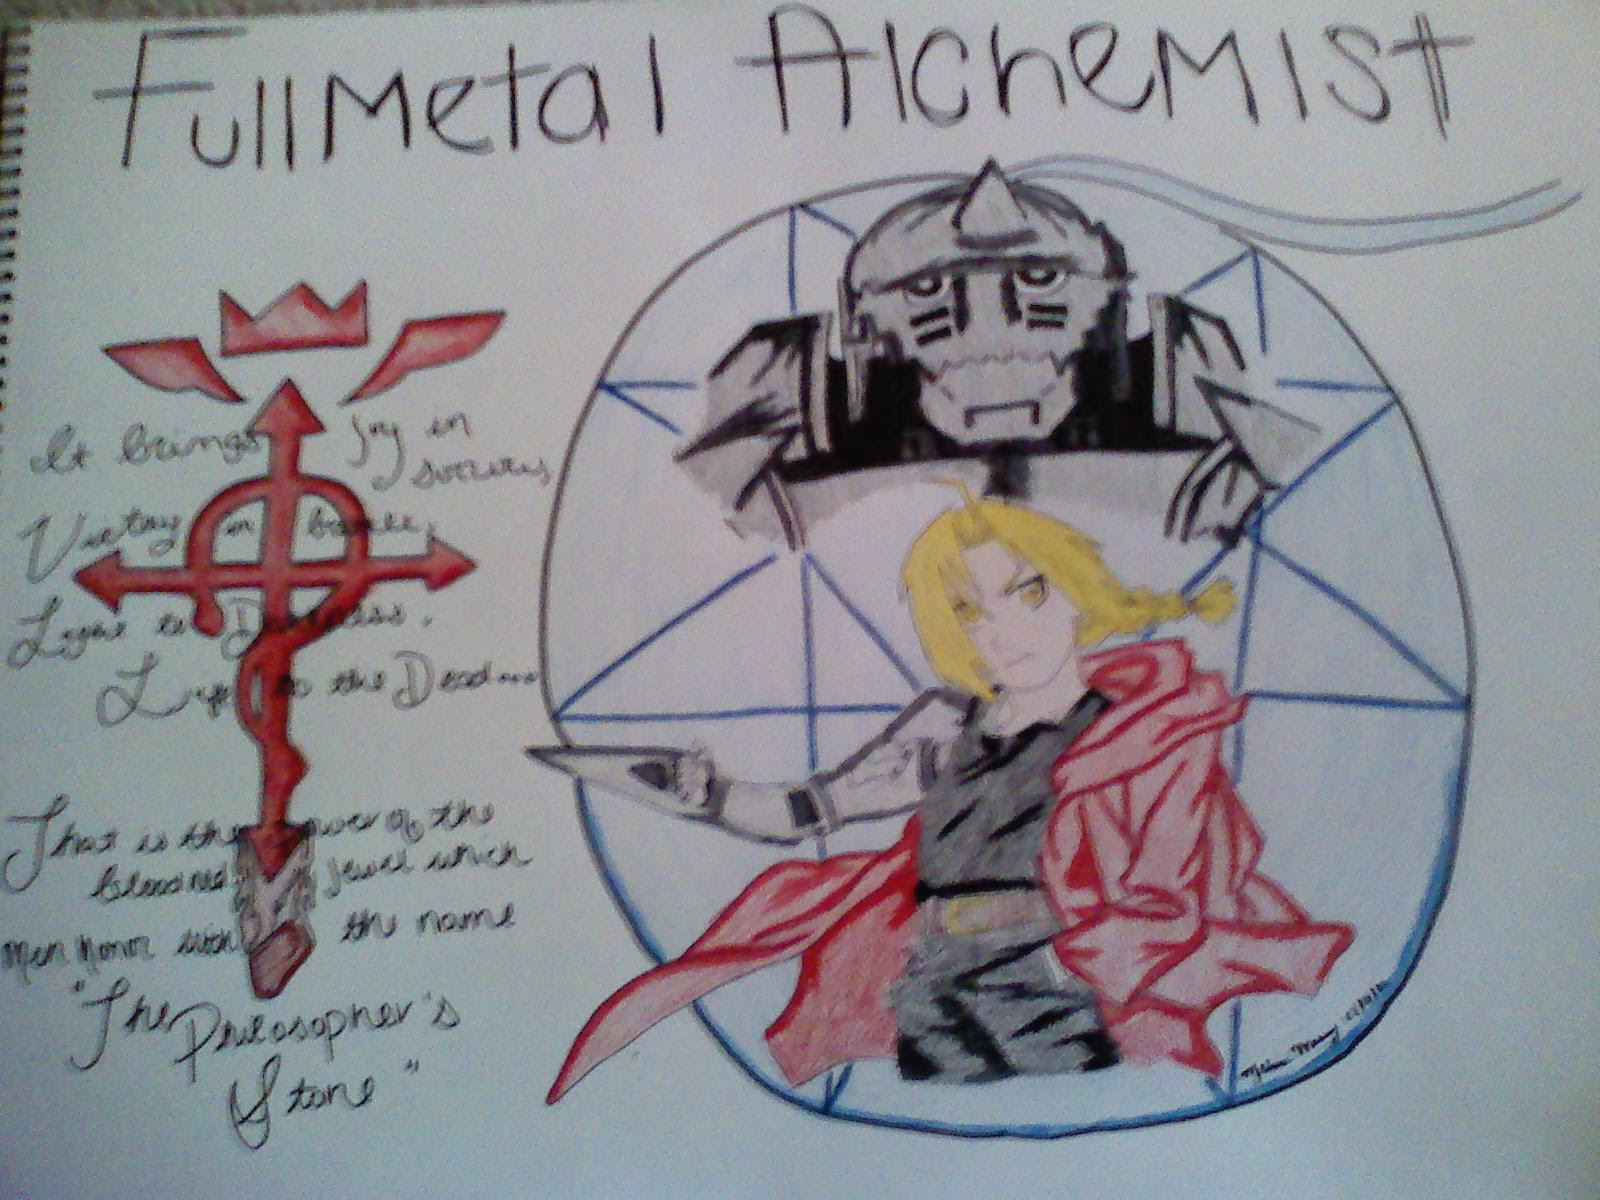 The Philosophers Stone Fullmetal Alchemist Manga Fan Art